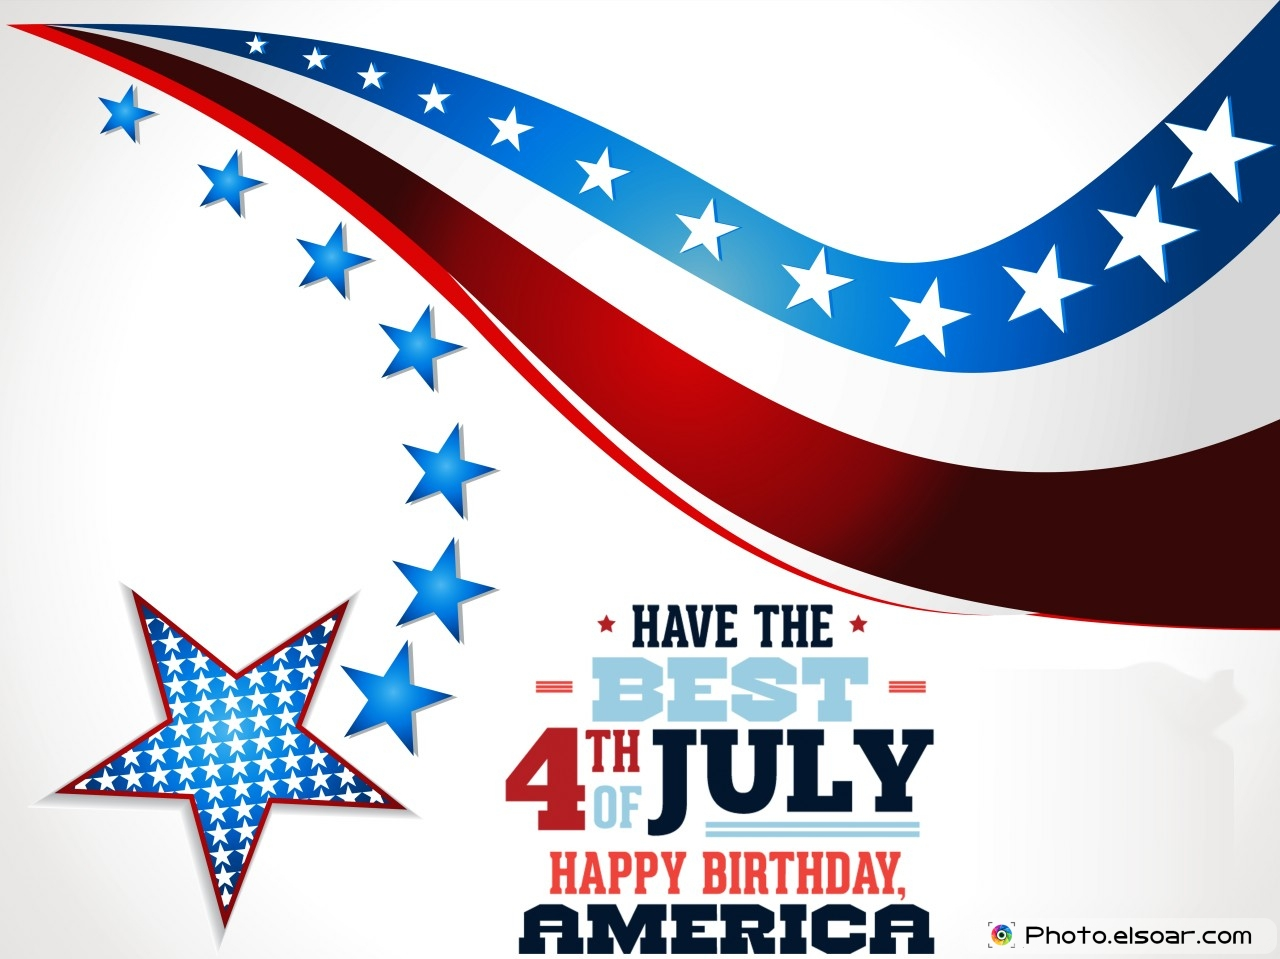 American Flag clipart independence day july 4th ~ Independence Independence Fireworks! July